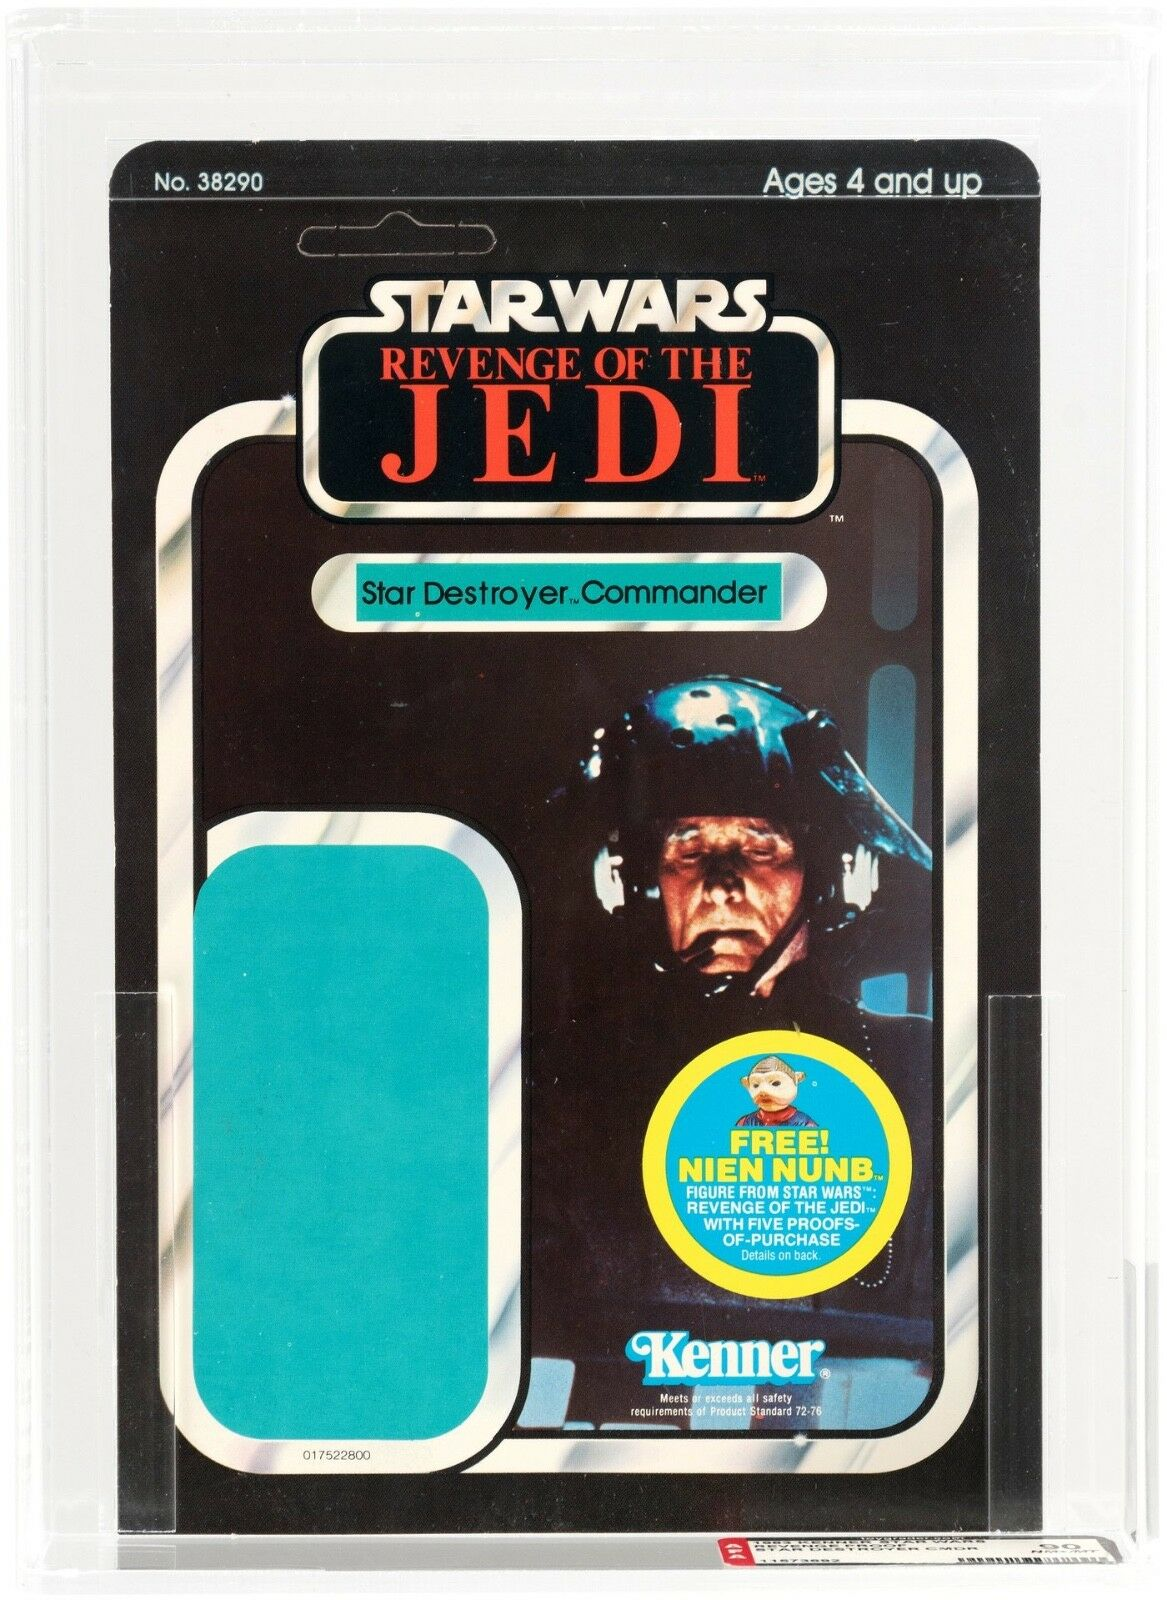 AFA 90 NM+ MT STAR WARS REVENGE OF THE JEDI STAR DESTROYER COMMANDER PROOF CARD